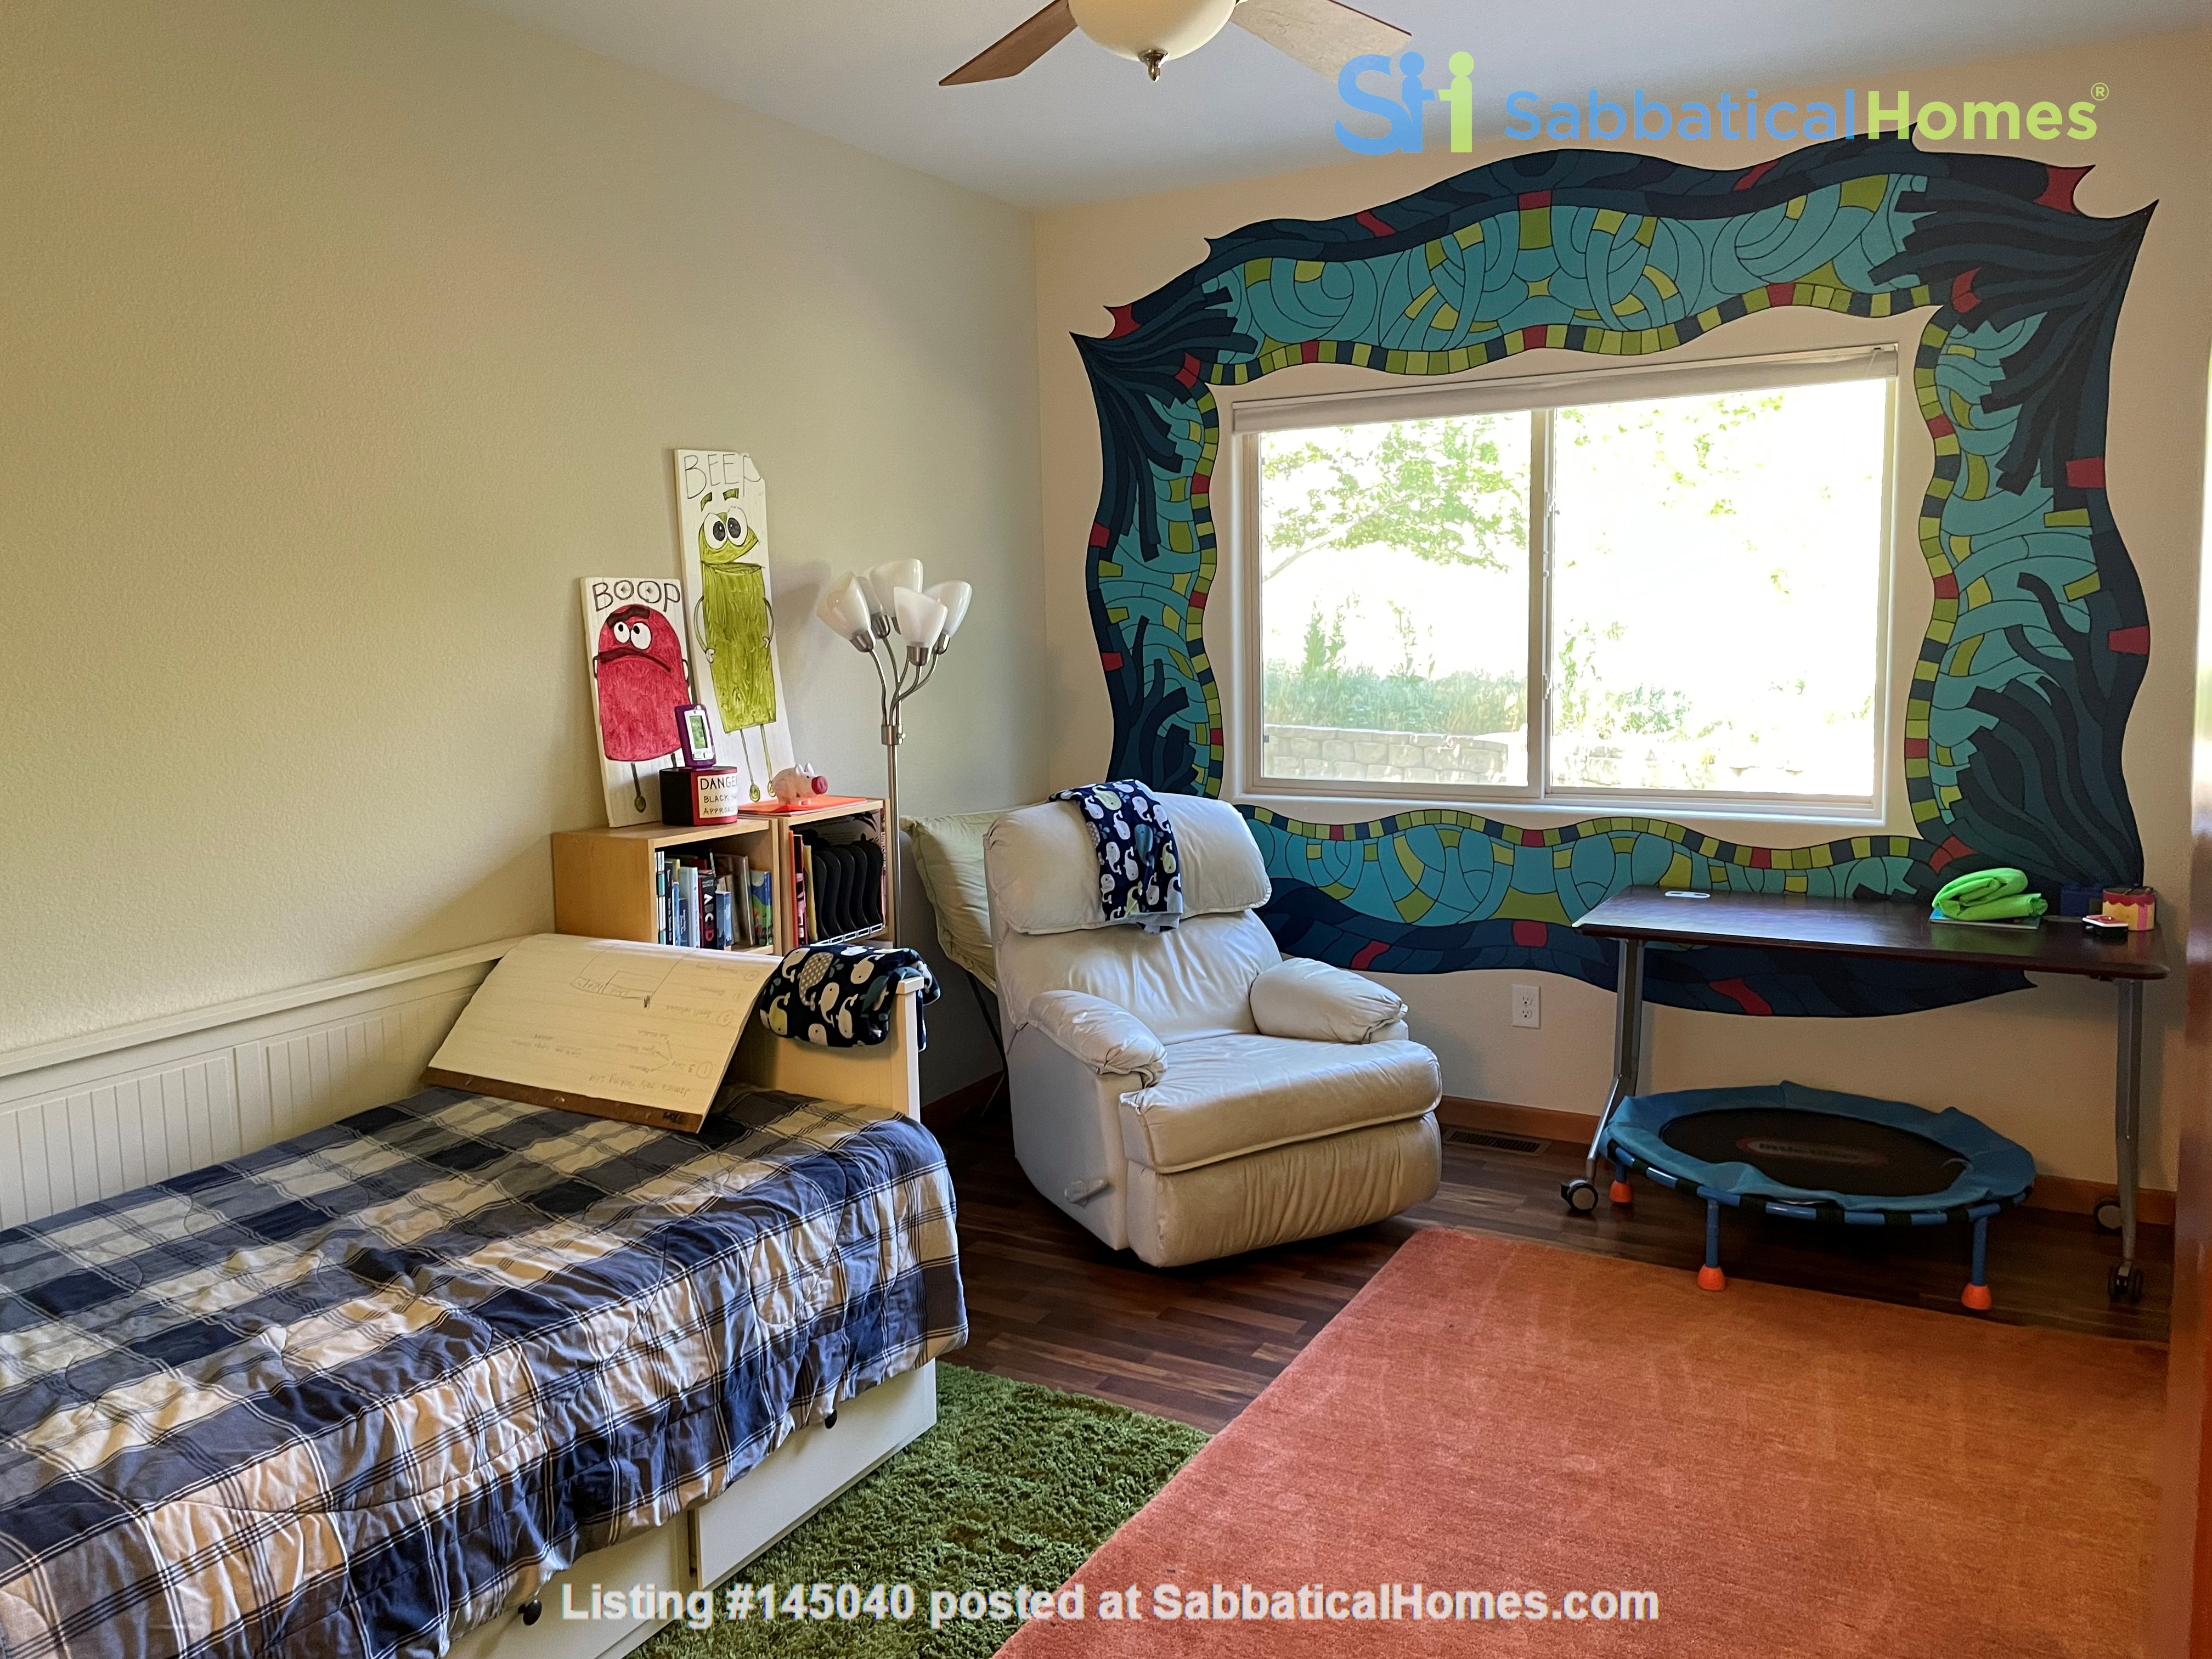 Hiking and biking paradise in beautiful Golden, Colorado - Spring 2022 swap Home Exchange in Golden 6